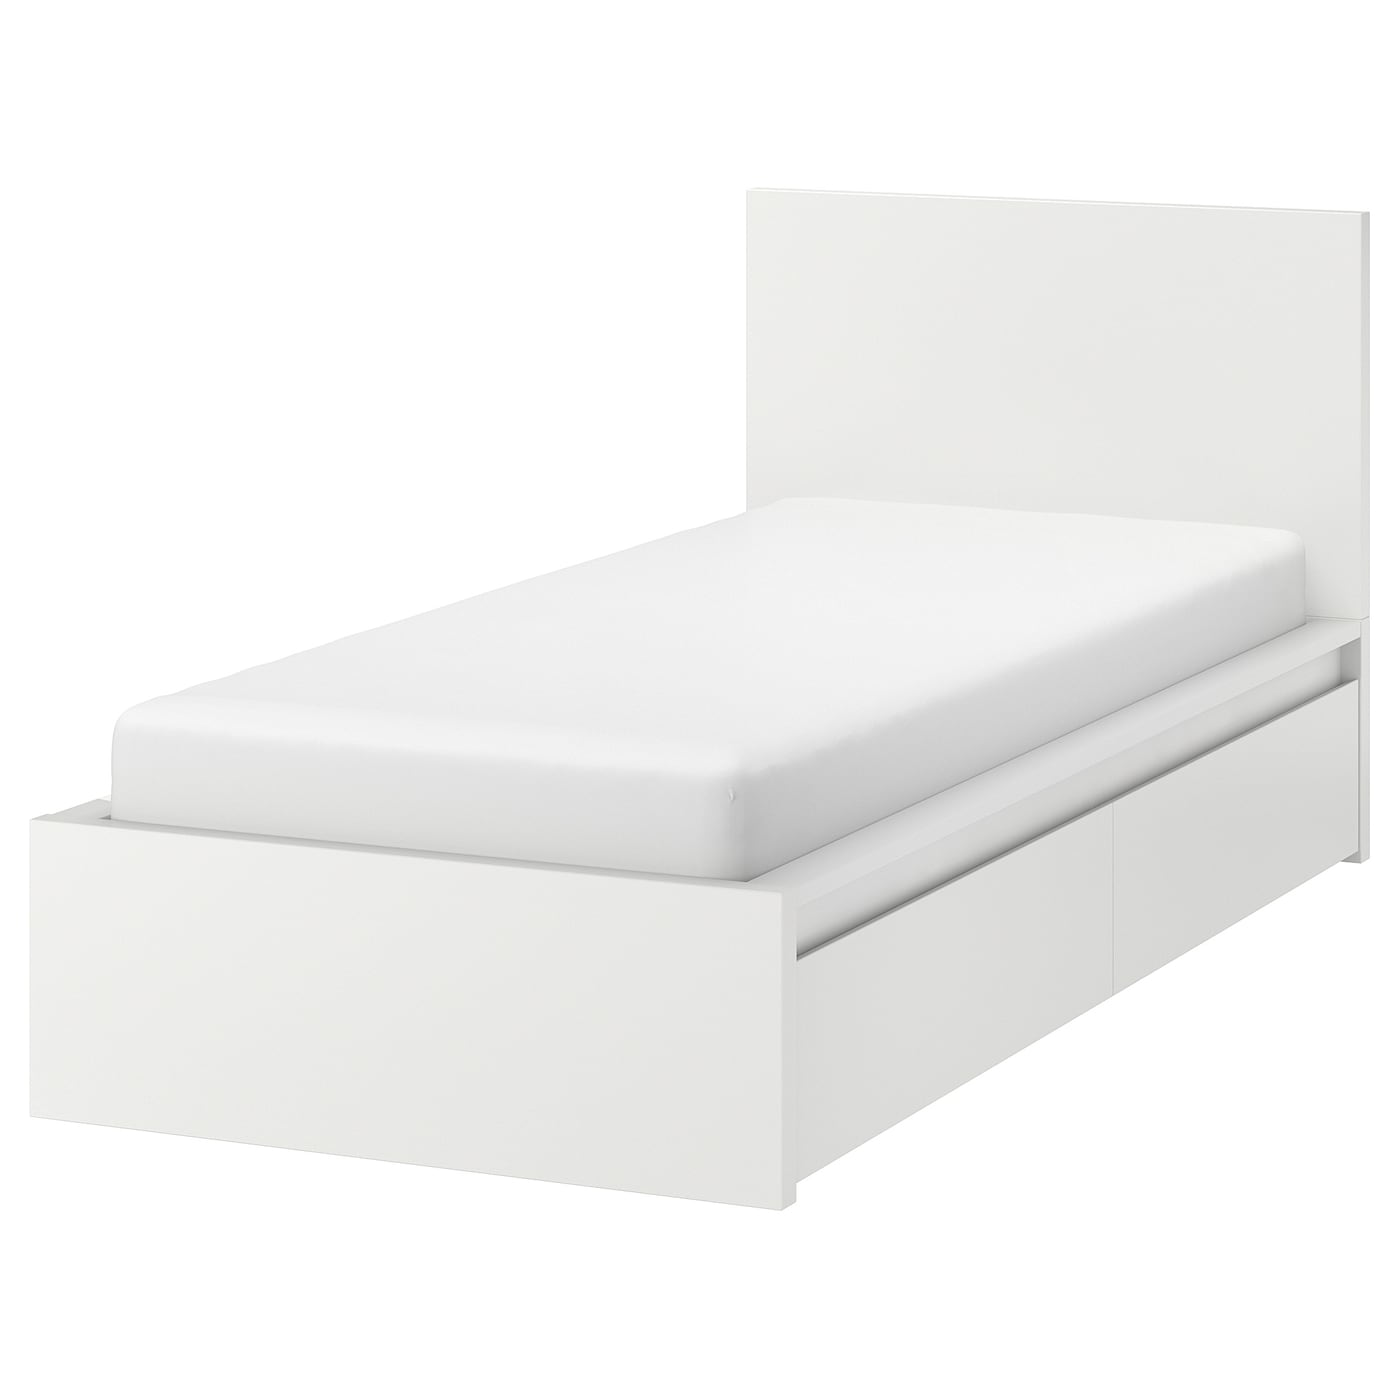 Malm High Bed Frame 2 Storage Bo